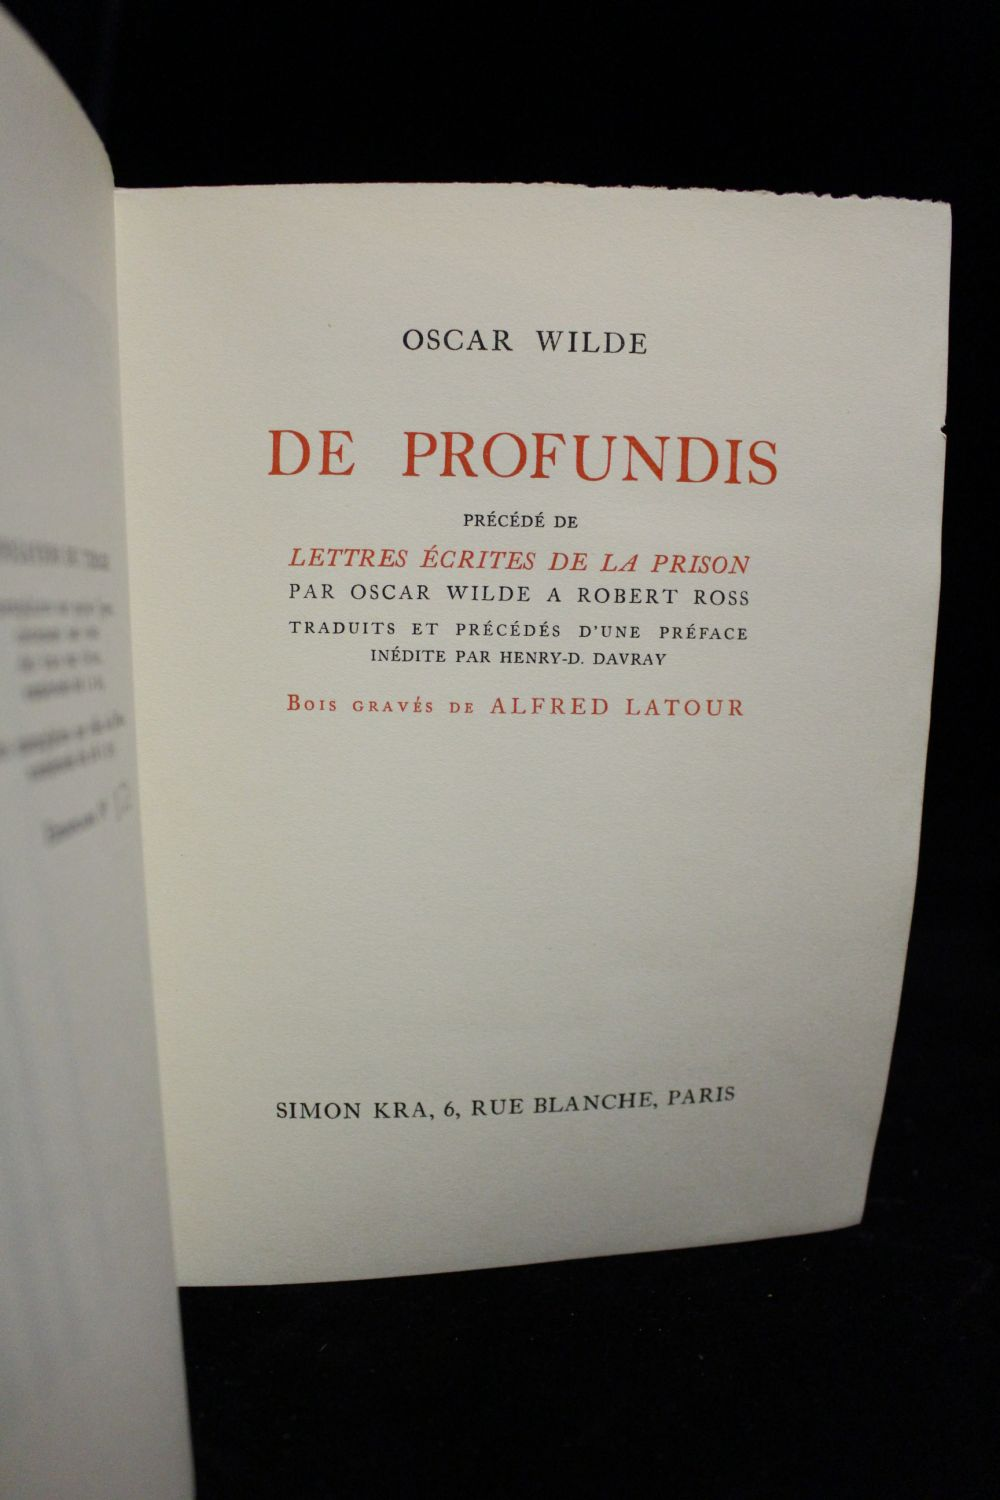 de profundis Find album reviews, stream songs, credits and award information for de profundis - arvo pärt on allmusic - 1996 - a quote from the composer opens the liner notes.